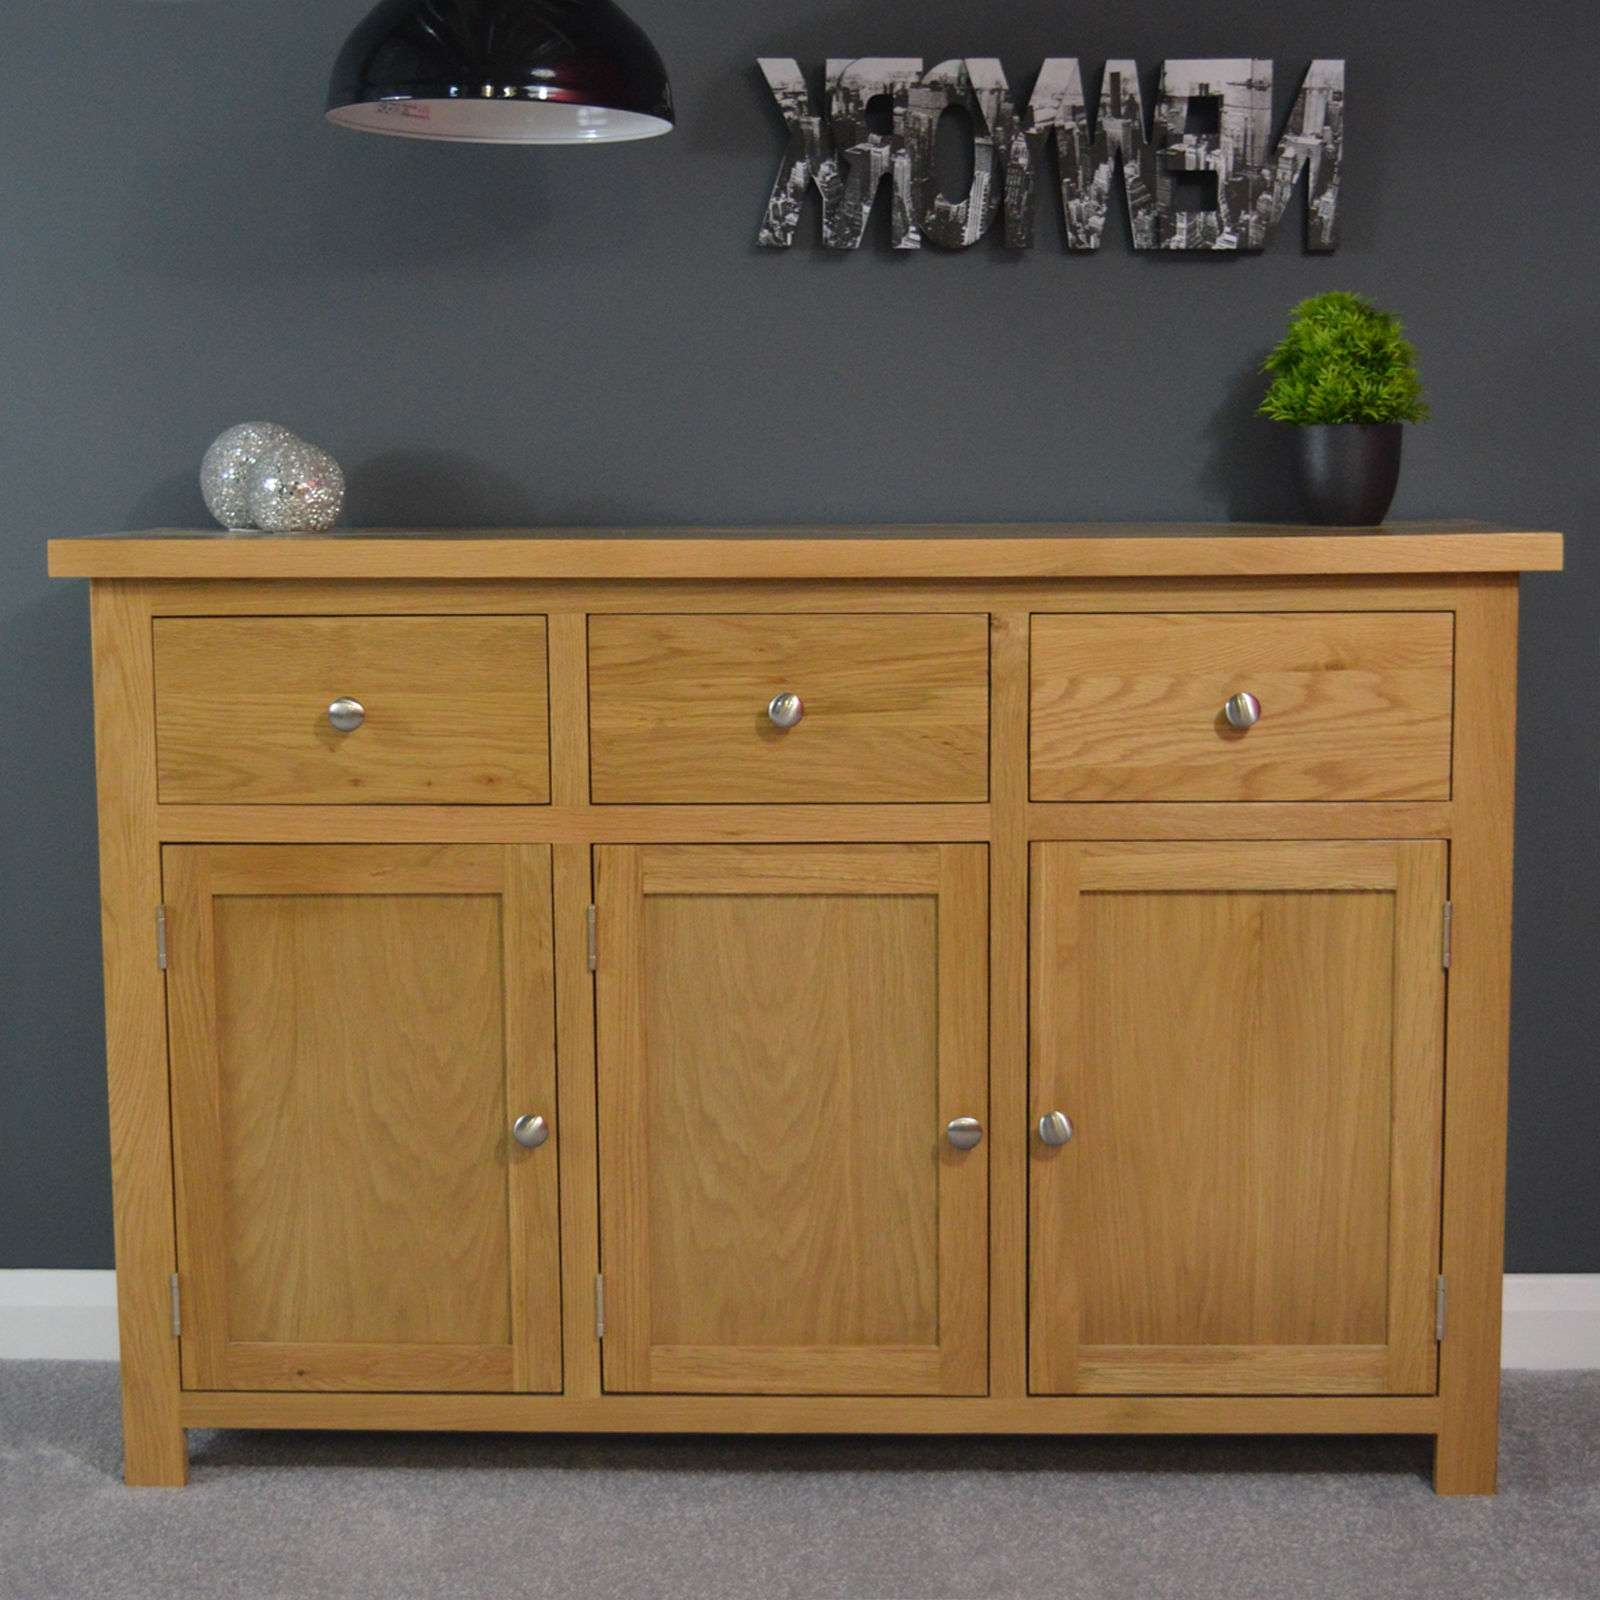 Living Room Sideboards And Buffets | Ebay Within Real Wood Sideboards (View 10 of 20)